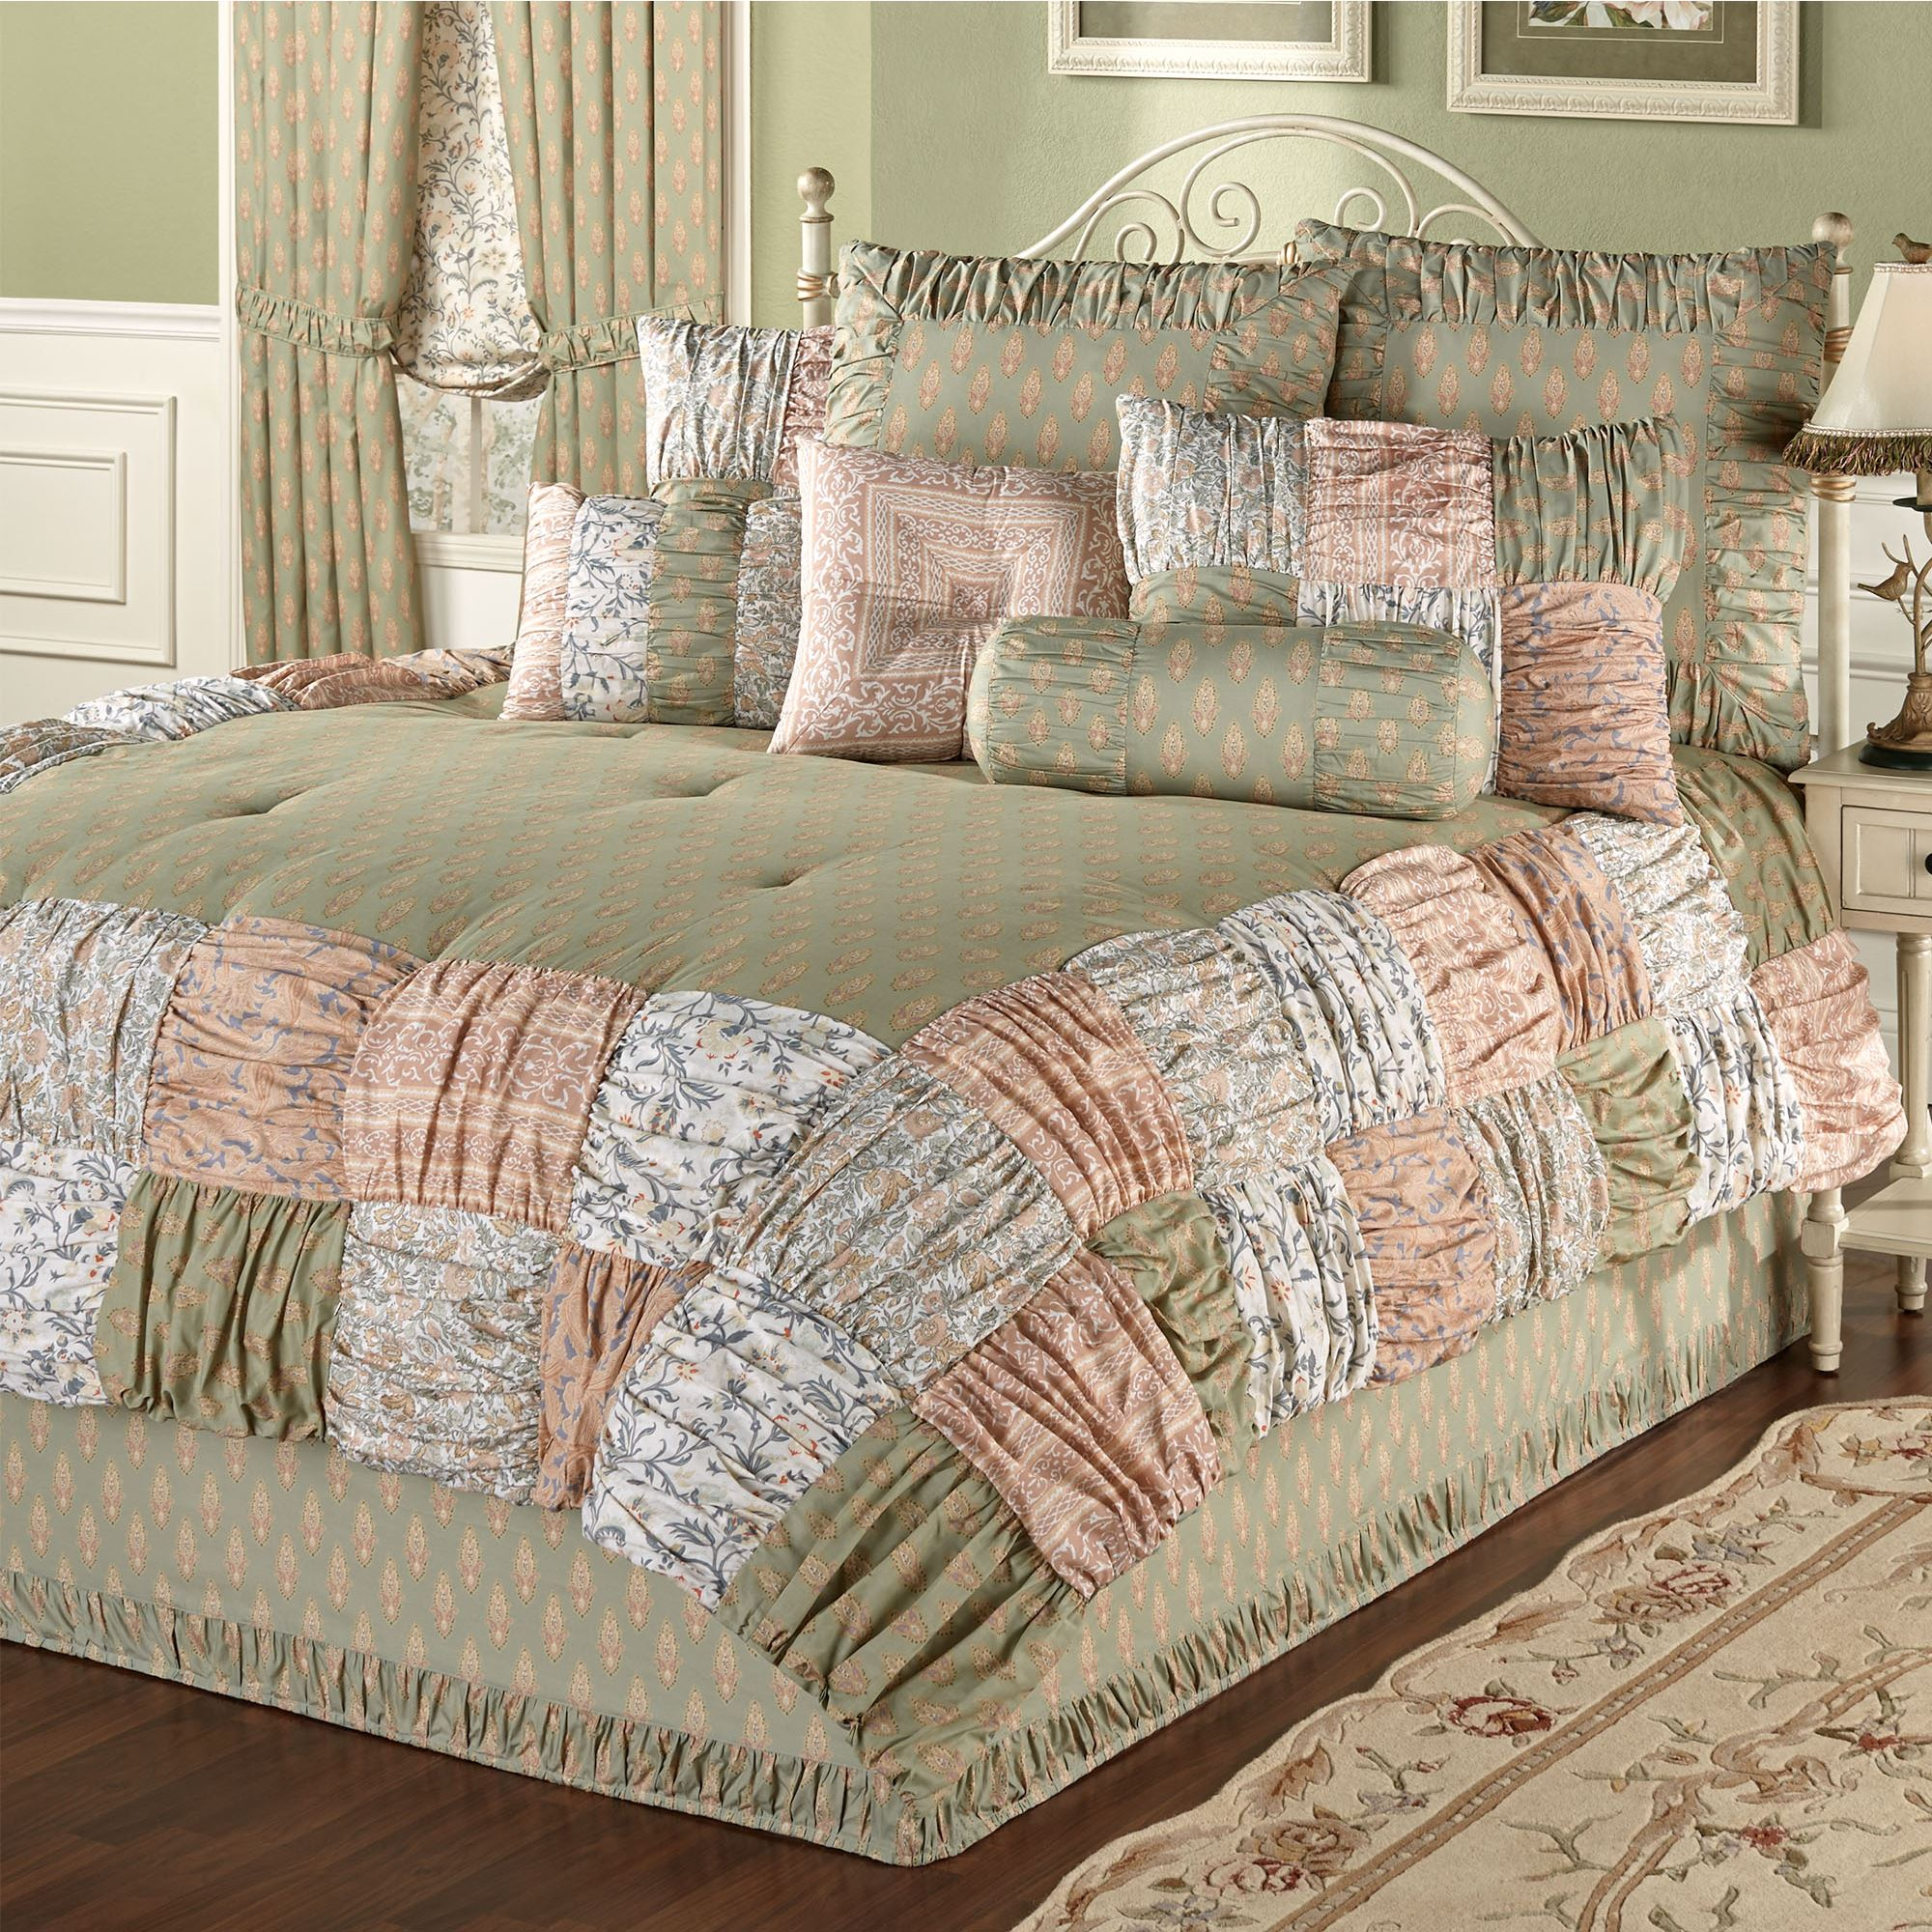 comforter comforters and textiles for elegant warm home intended sets